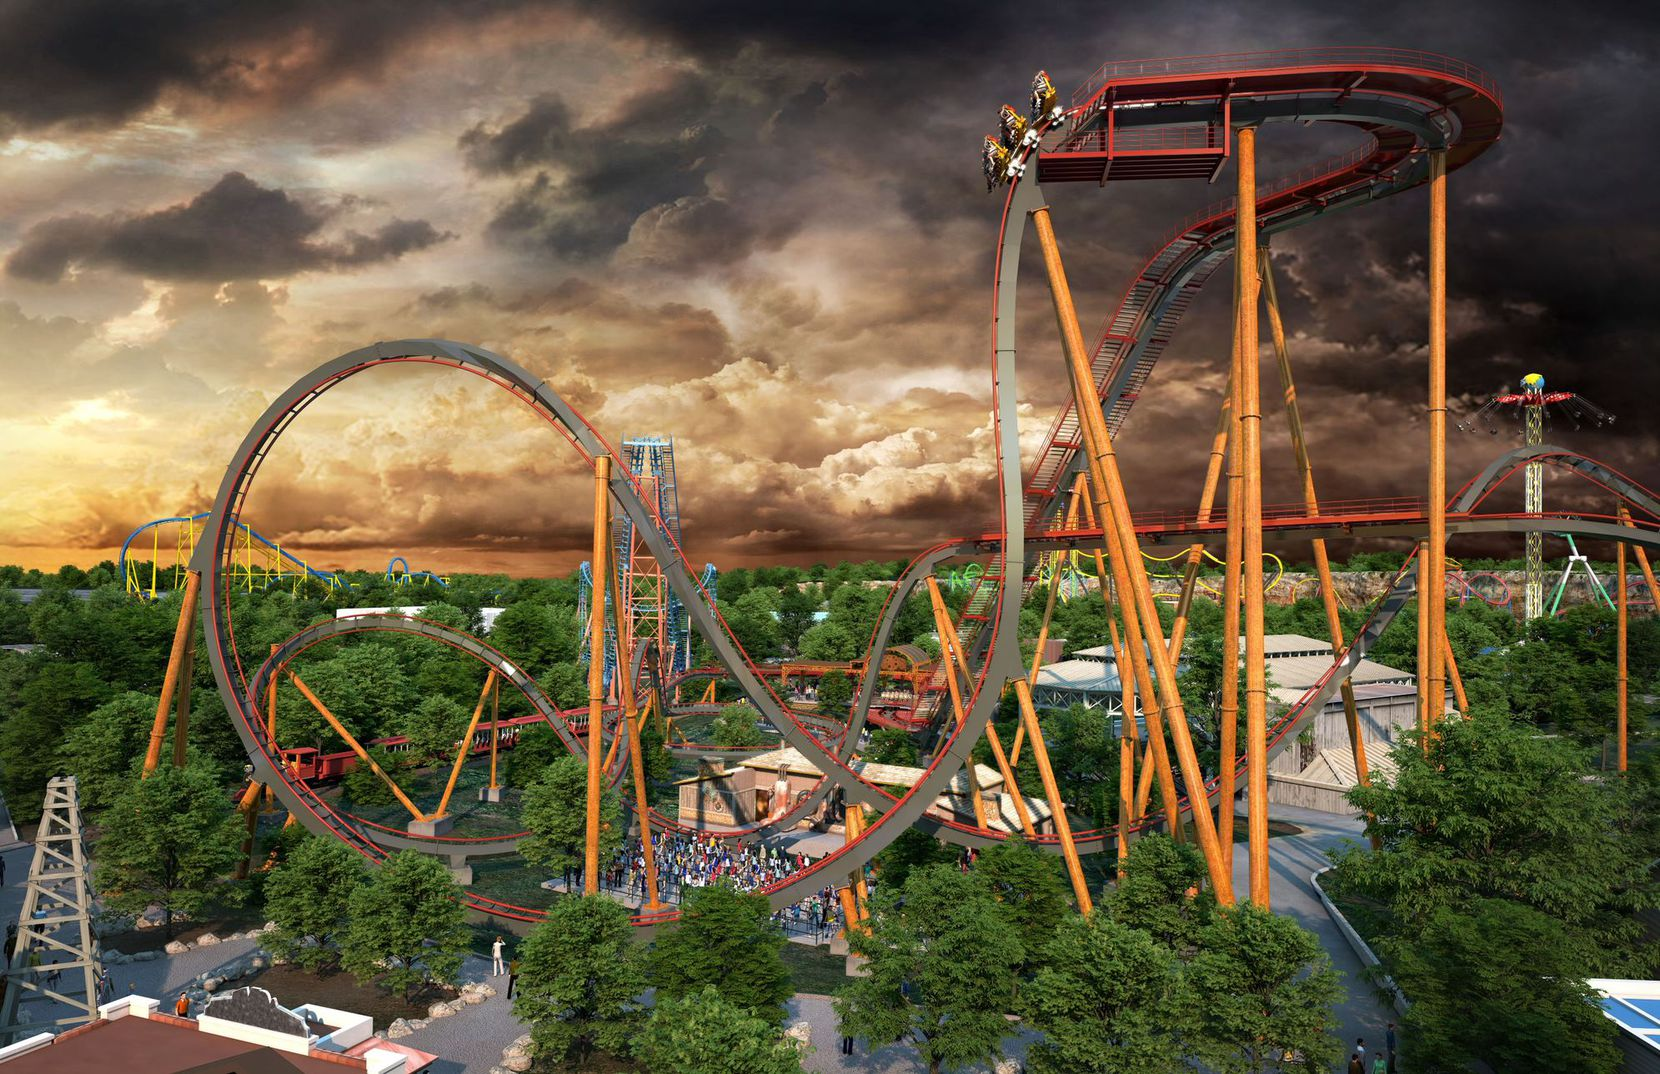 Dr. Diabolical's Cliffhanger rollercoaster will be the world's steepest dive coaster when it opens at Six Flags Fiesta in San Antonio in 2022.